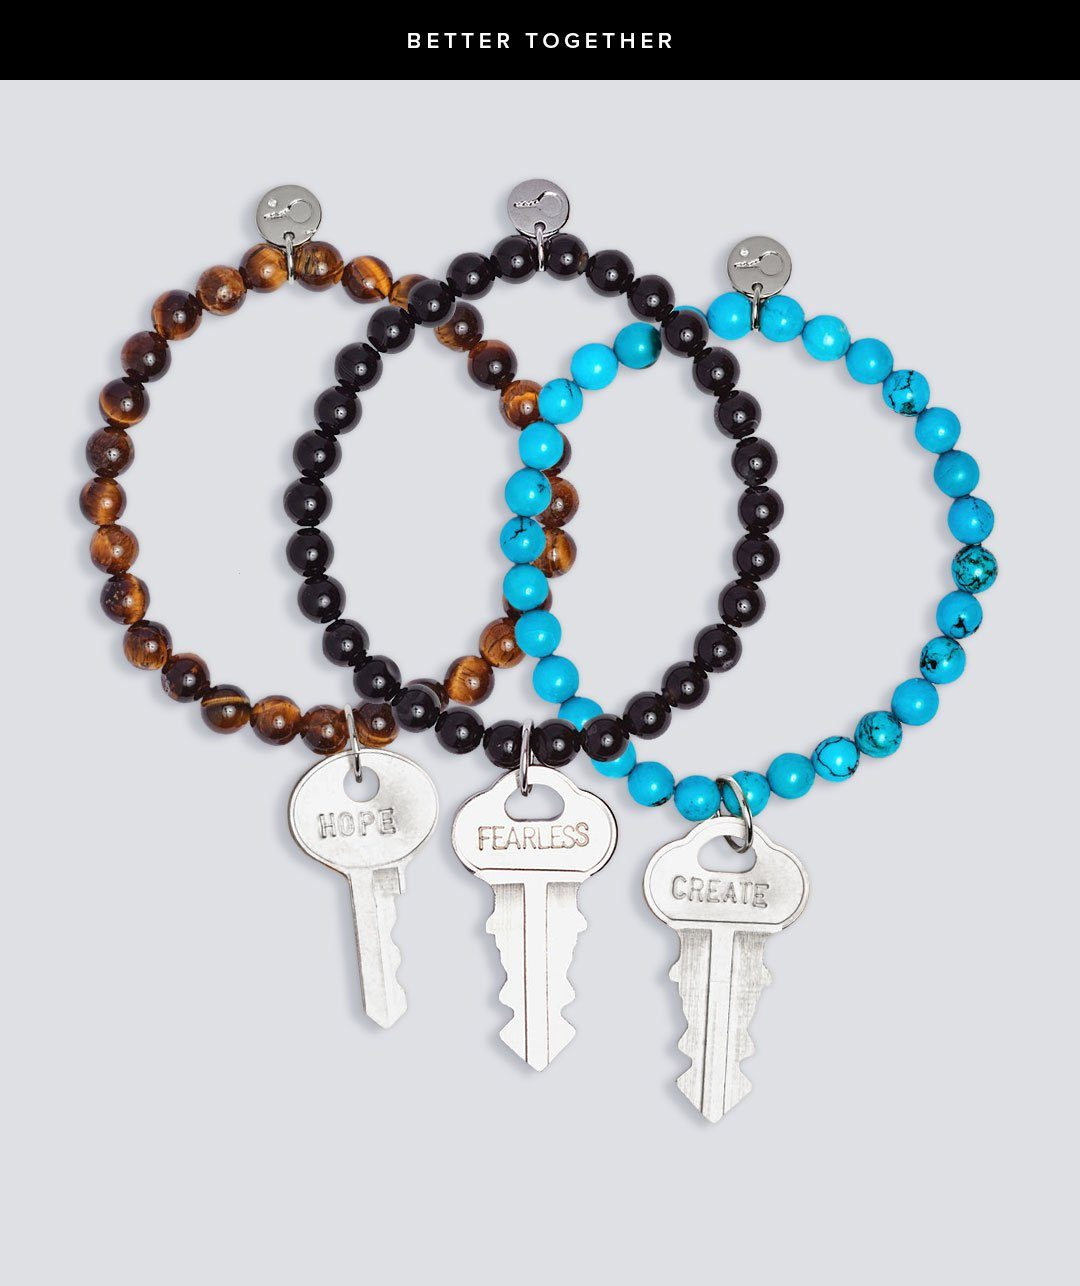 MEDITATION BEAD KEY BRACELET BUNDLE Bracelets The Giving Keys